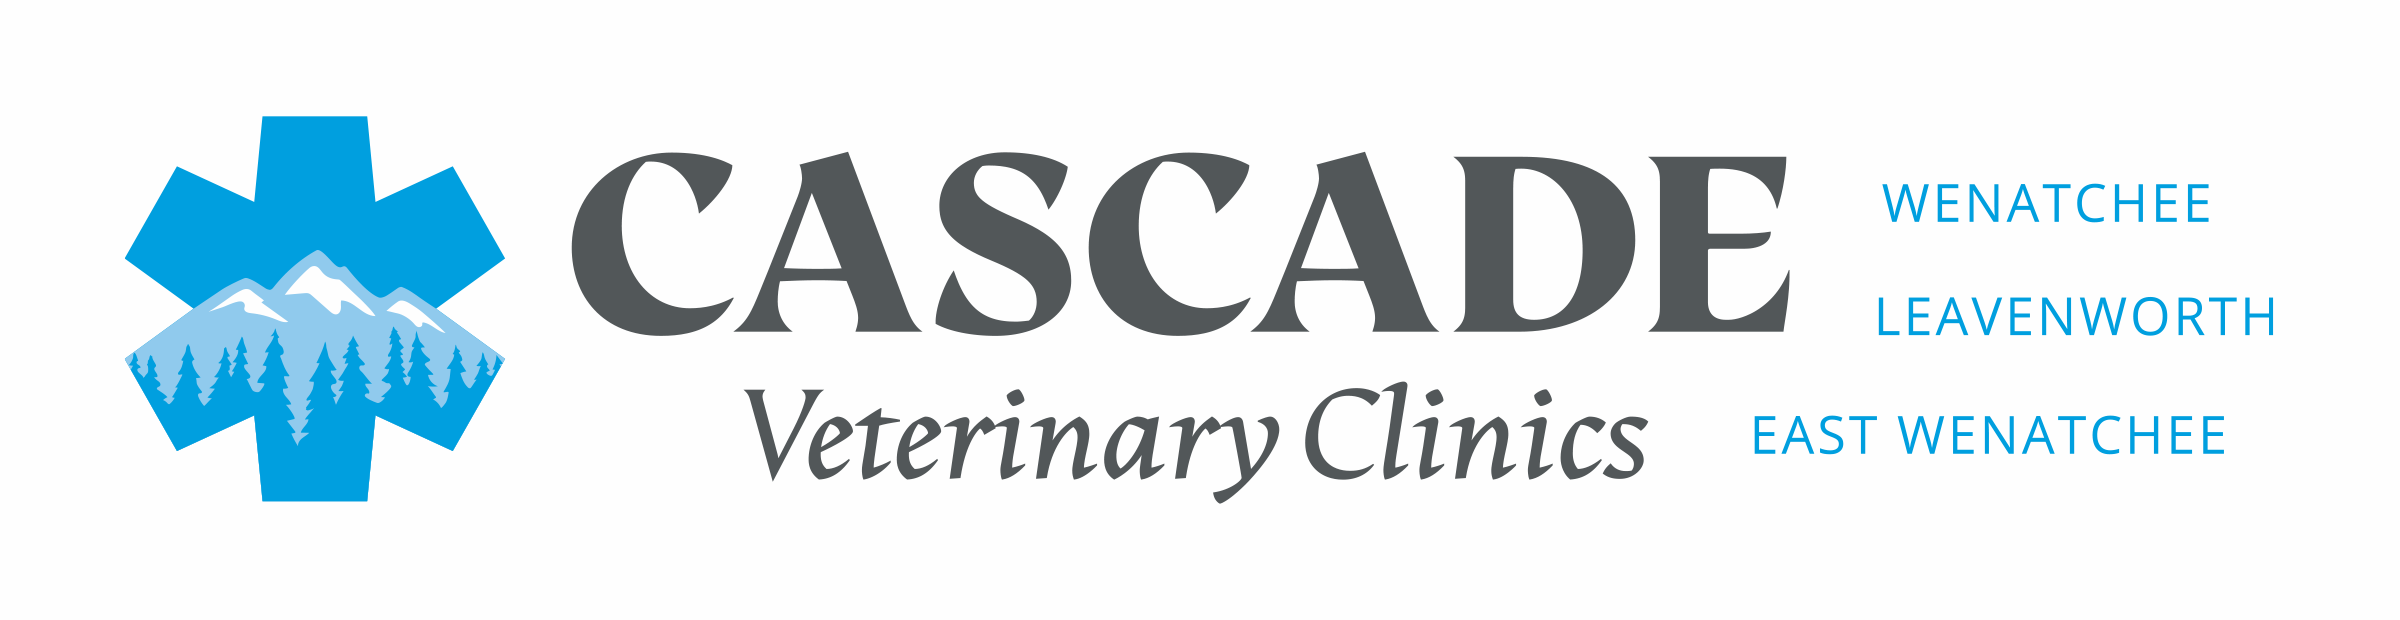 Cascade Veterinary Clinics